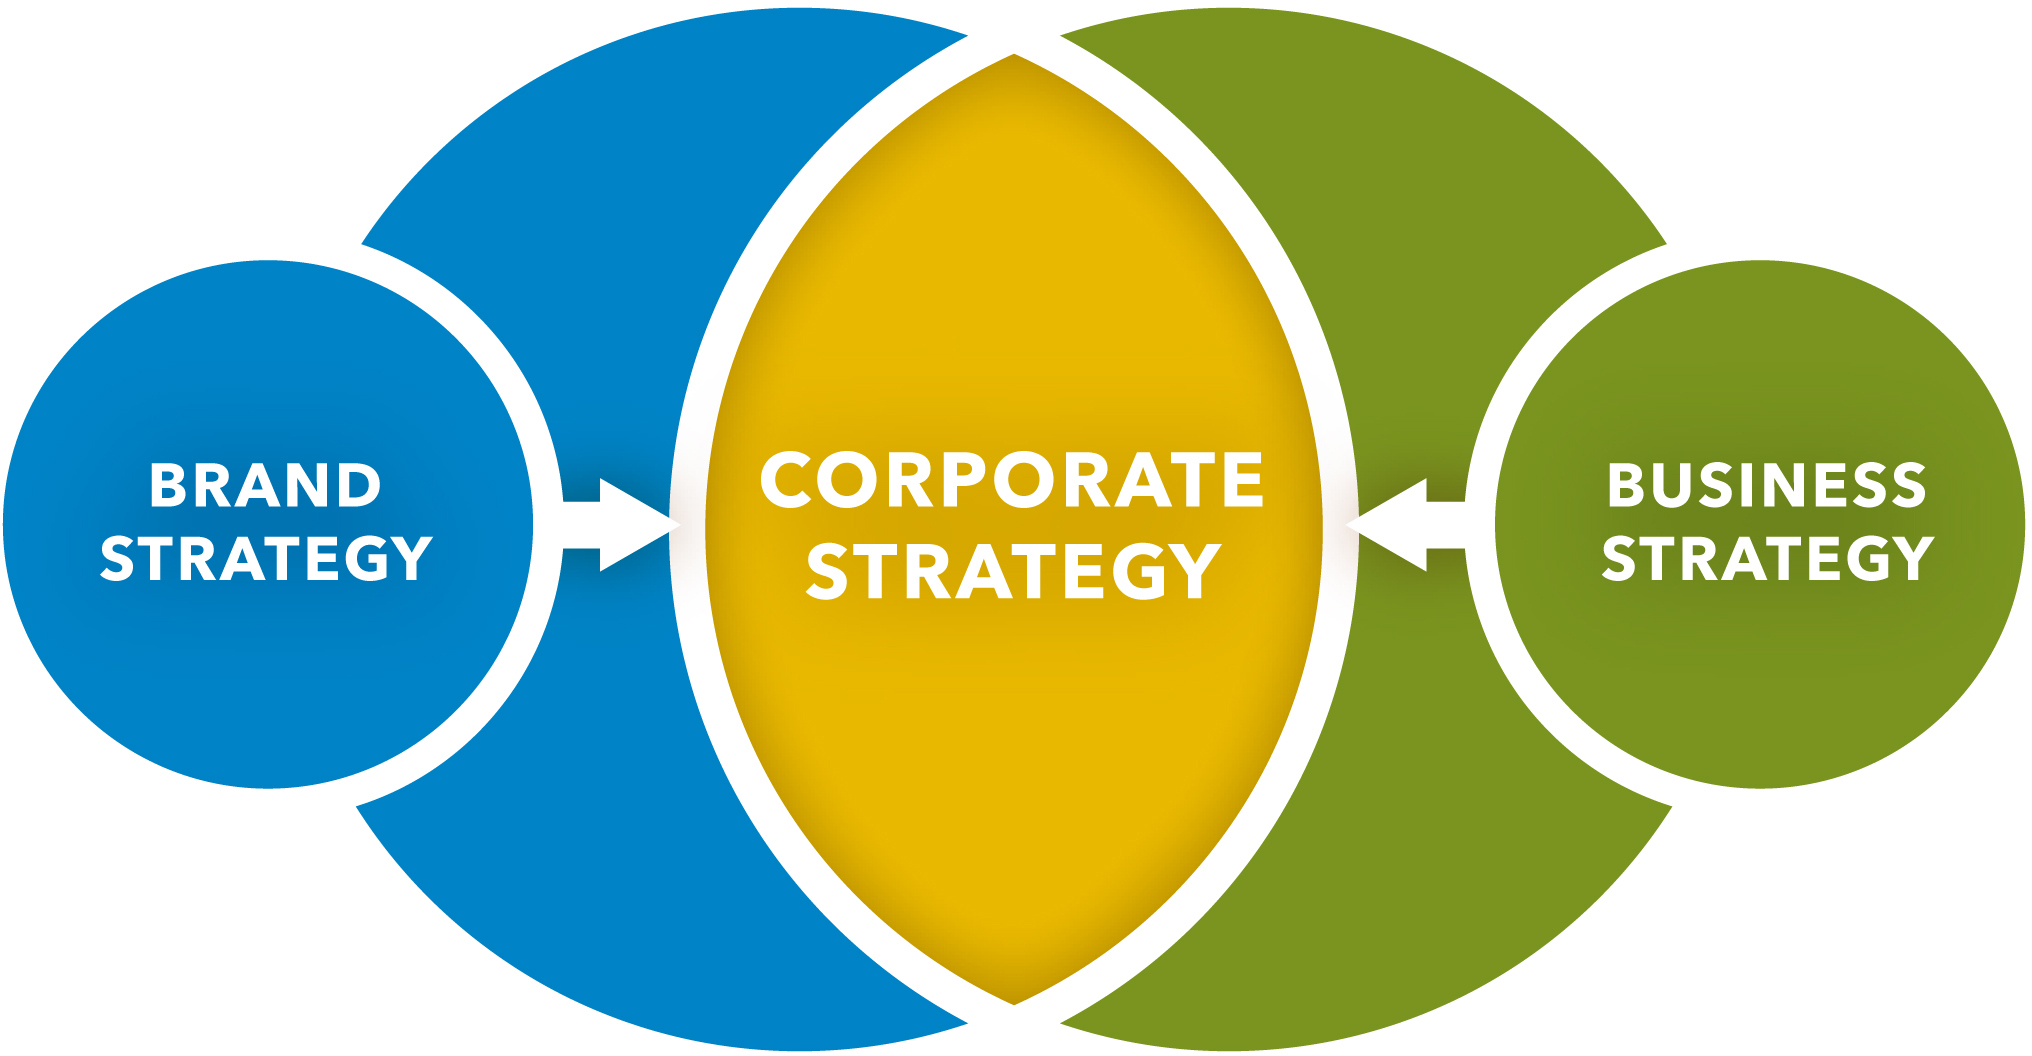 Business-brand alignment - I help organizations align their business and brand strategy to get a competitive edge